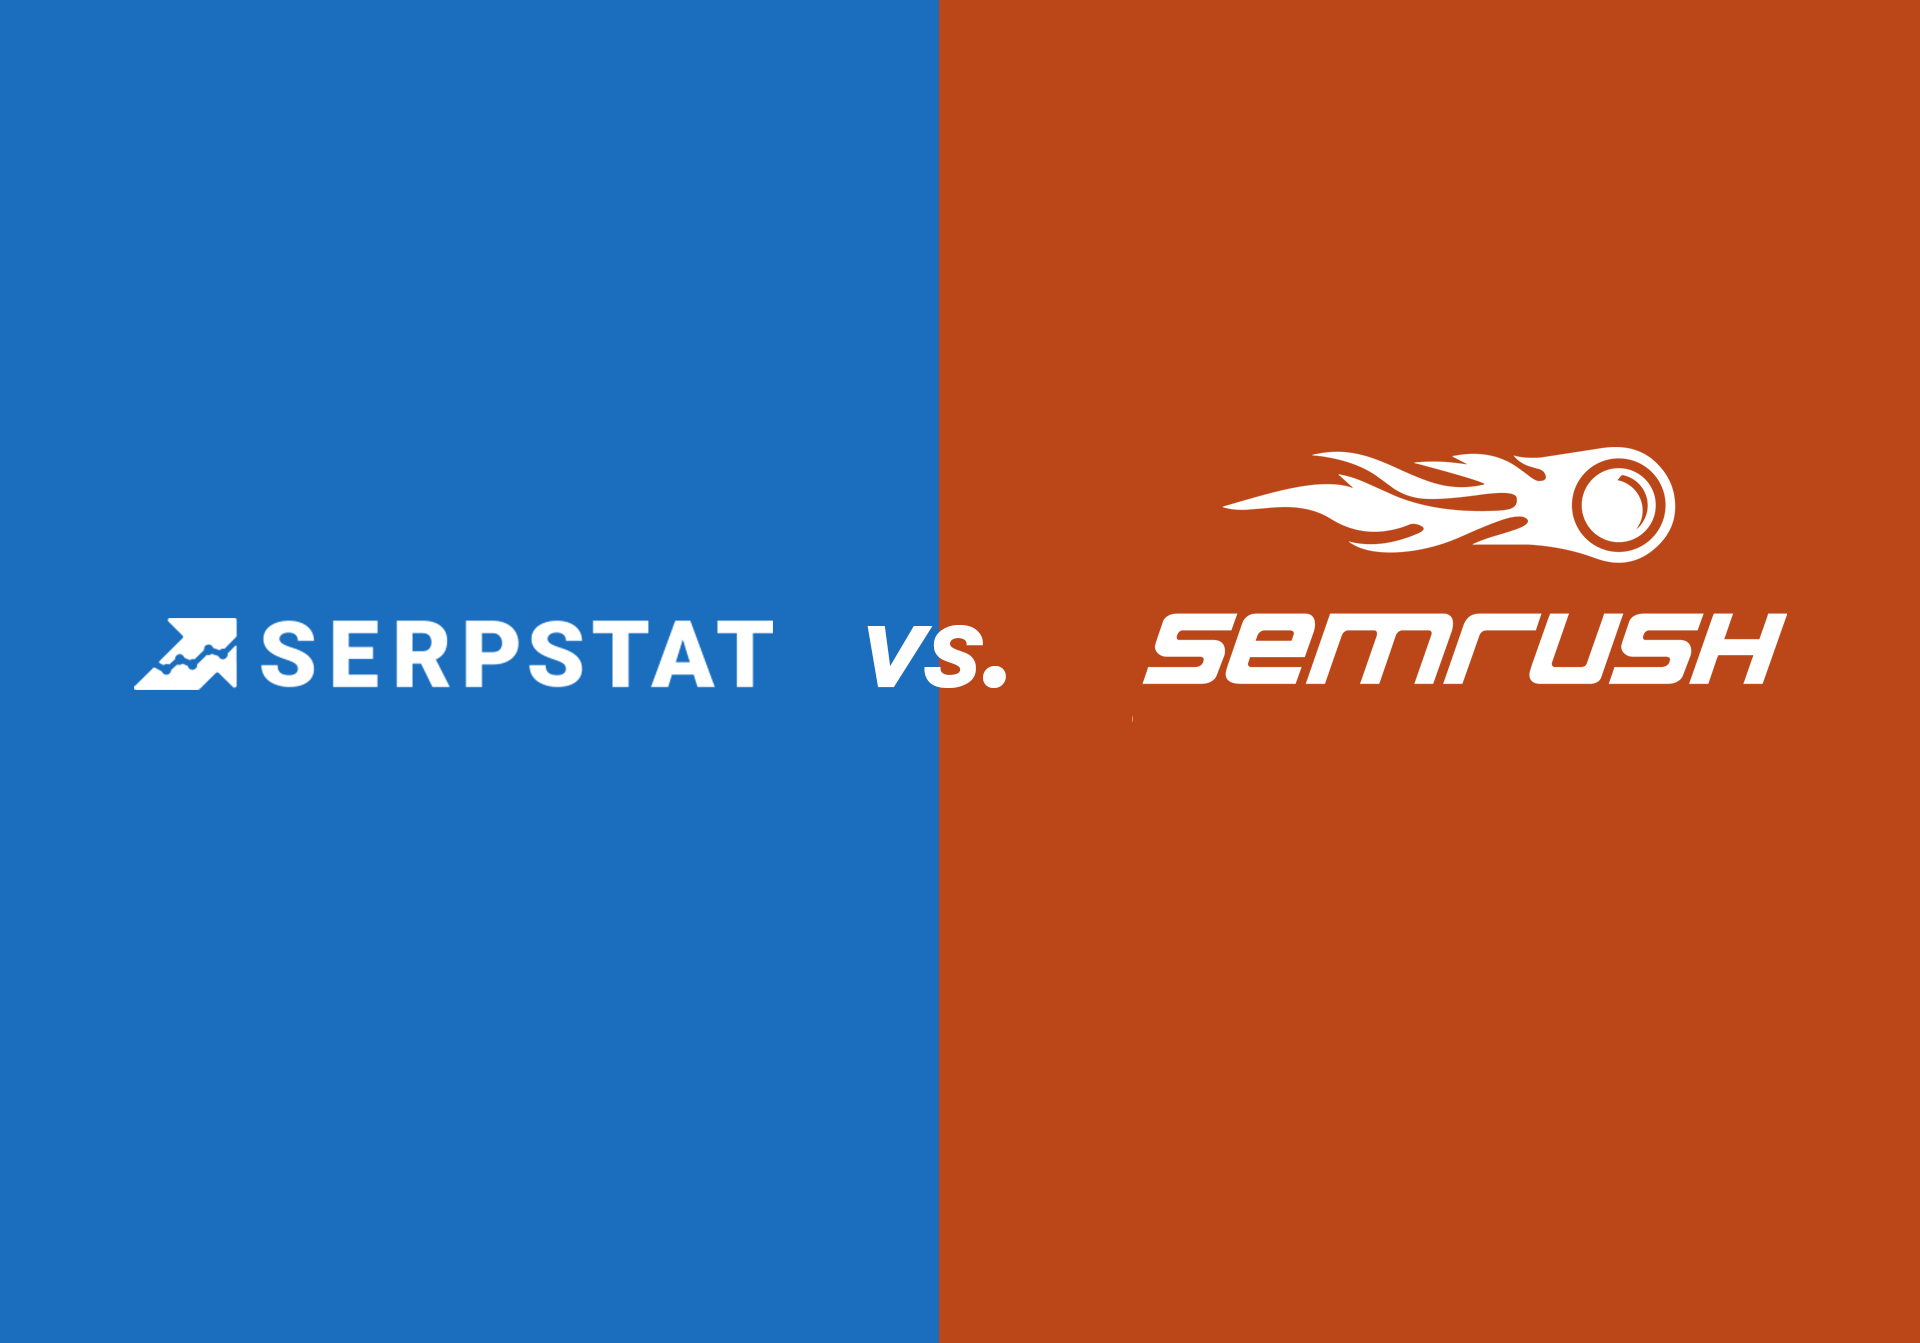 Seo Software Semrush Size Reddit